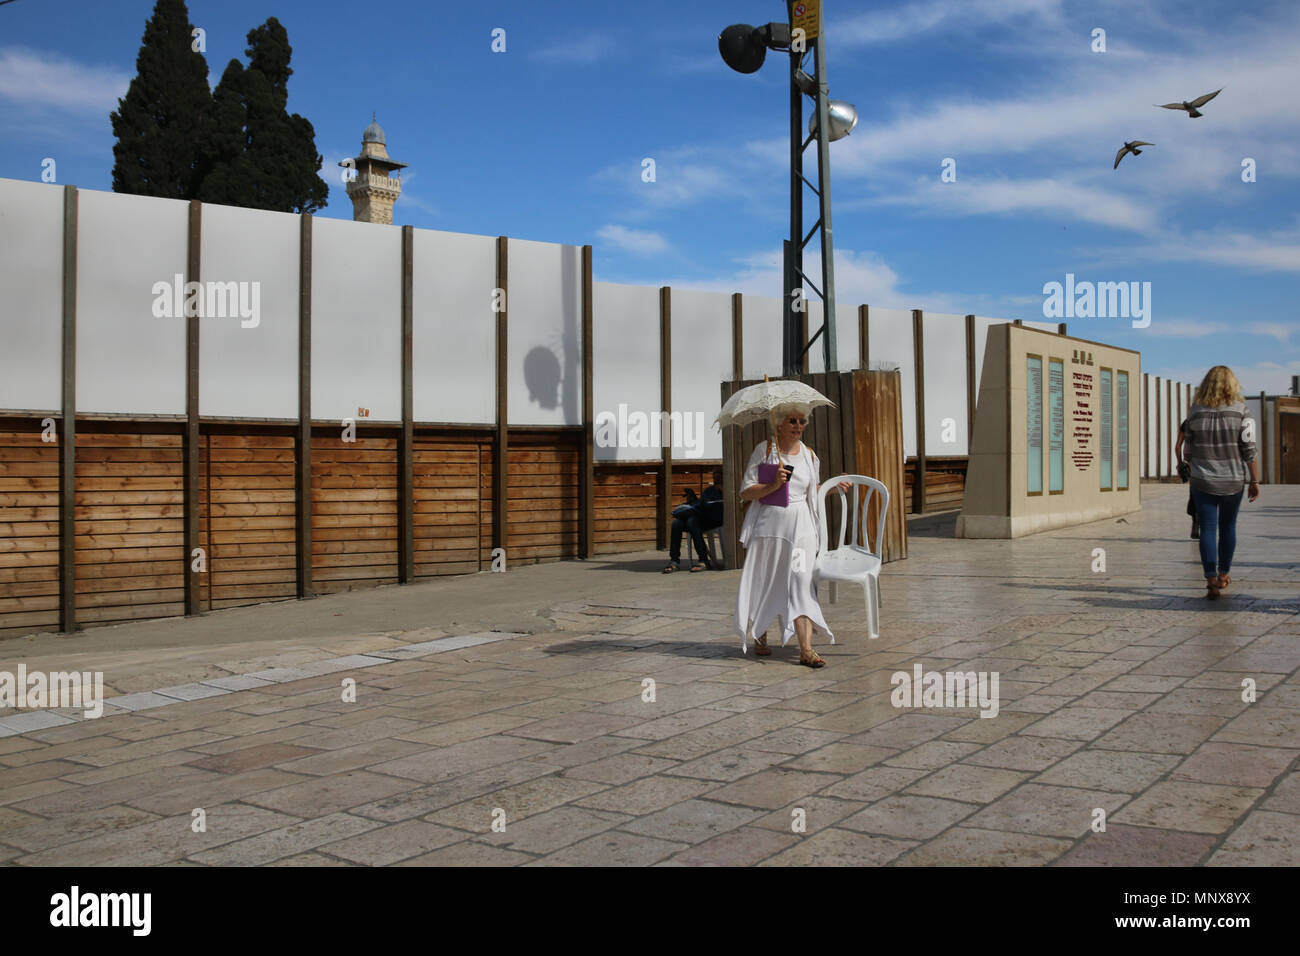 Jerusalem, Israel - May 16, 2018: A woman with a white umbrella and white dress wears a white chair across the square in front of the Wailing Wall in  - Stock Image